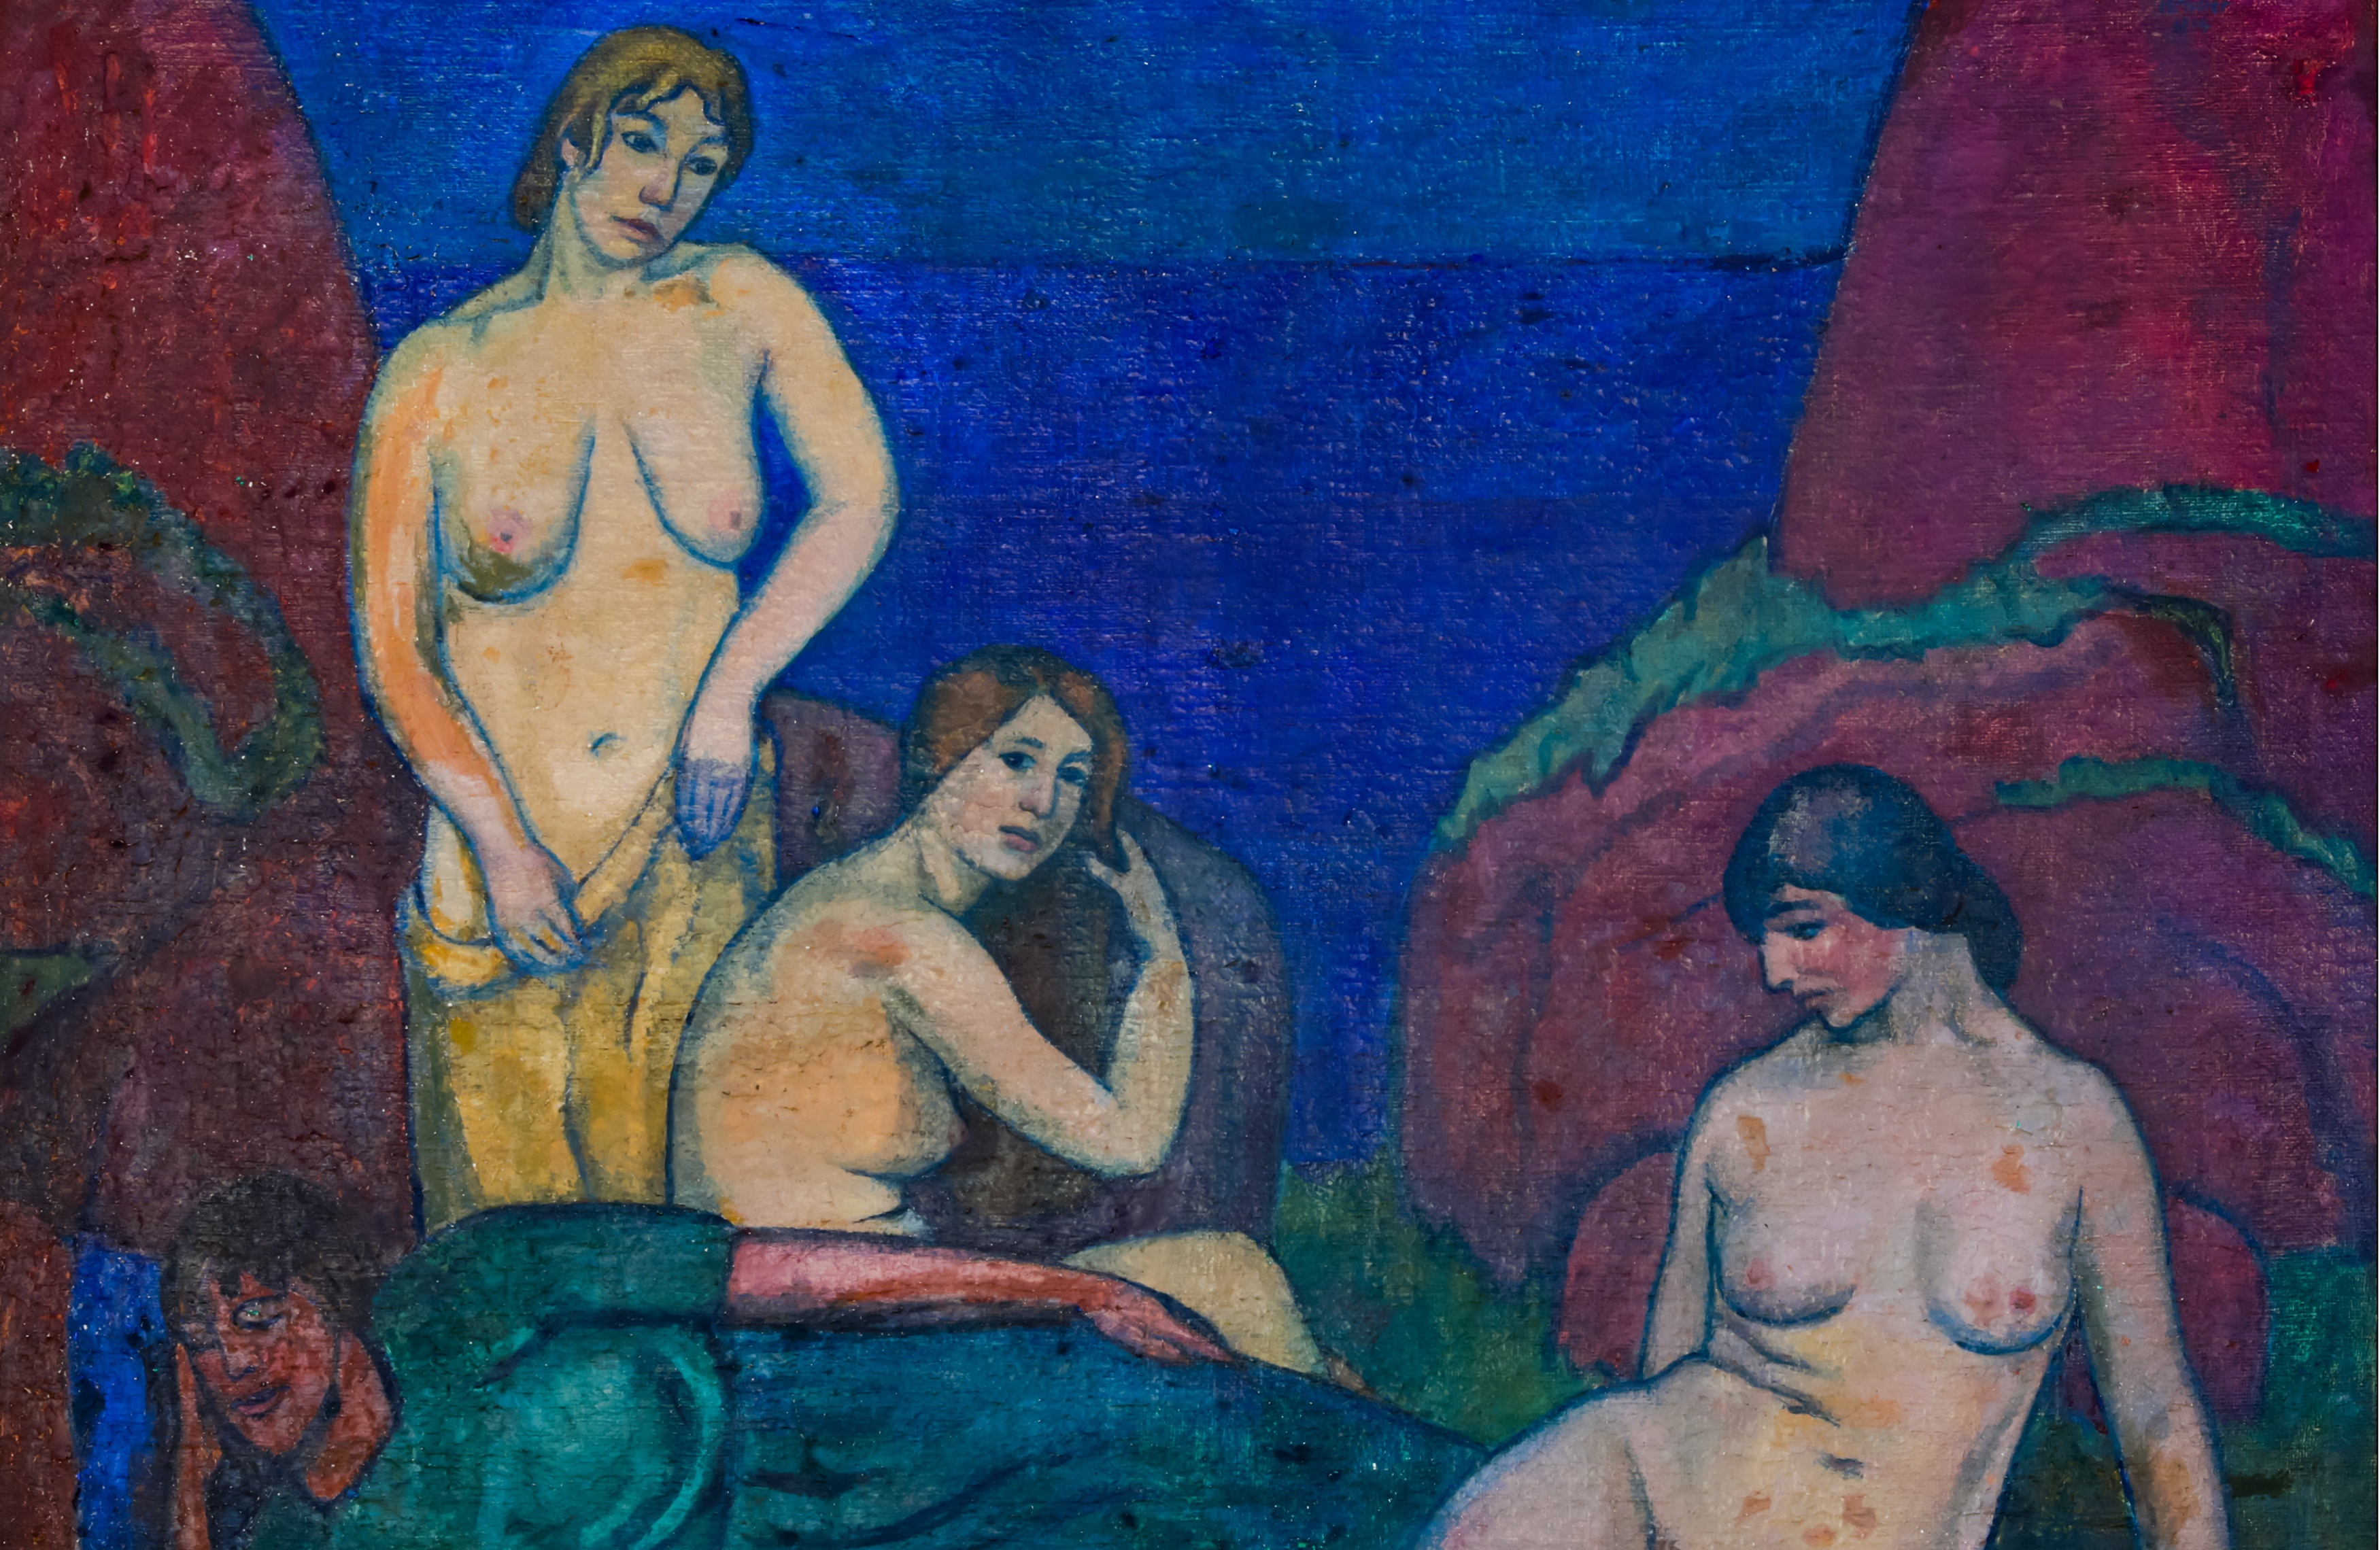 19th & 20th Century Paintings and Works on Paper